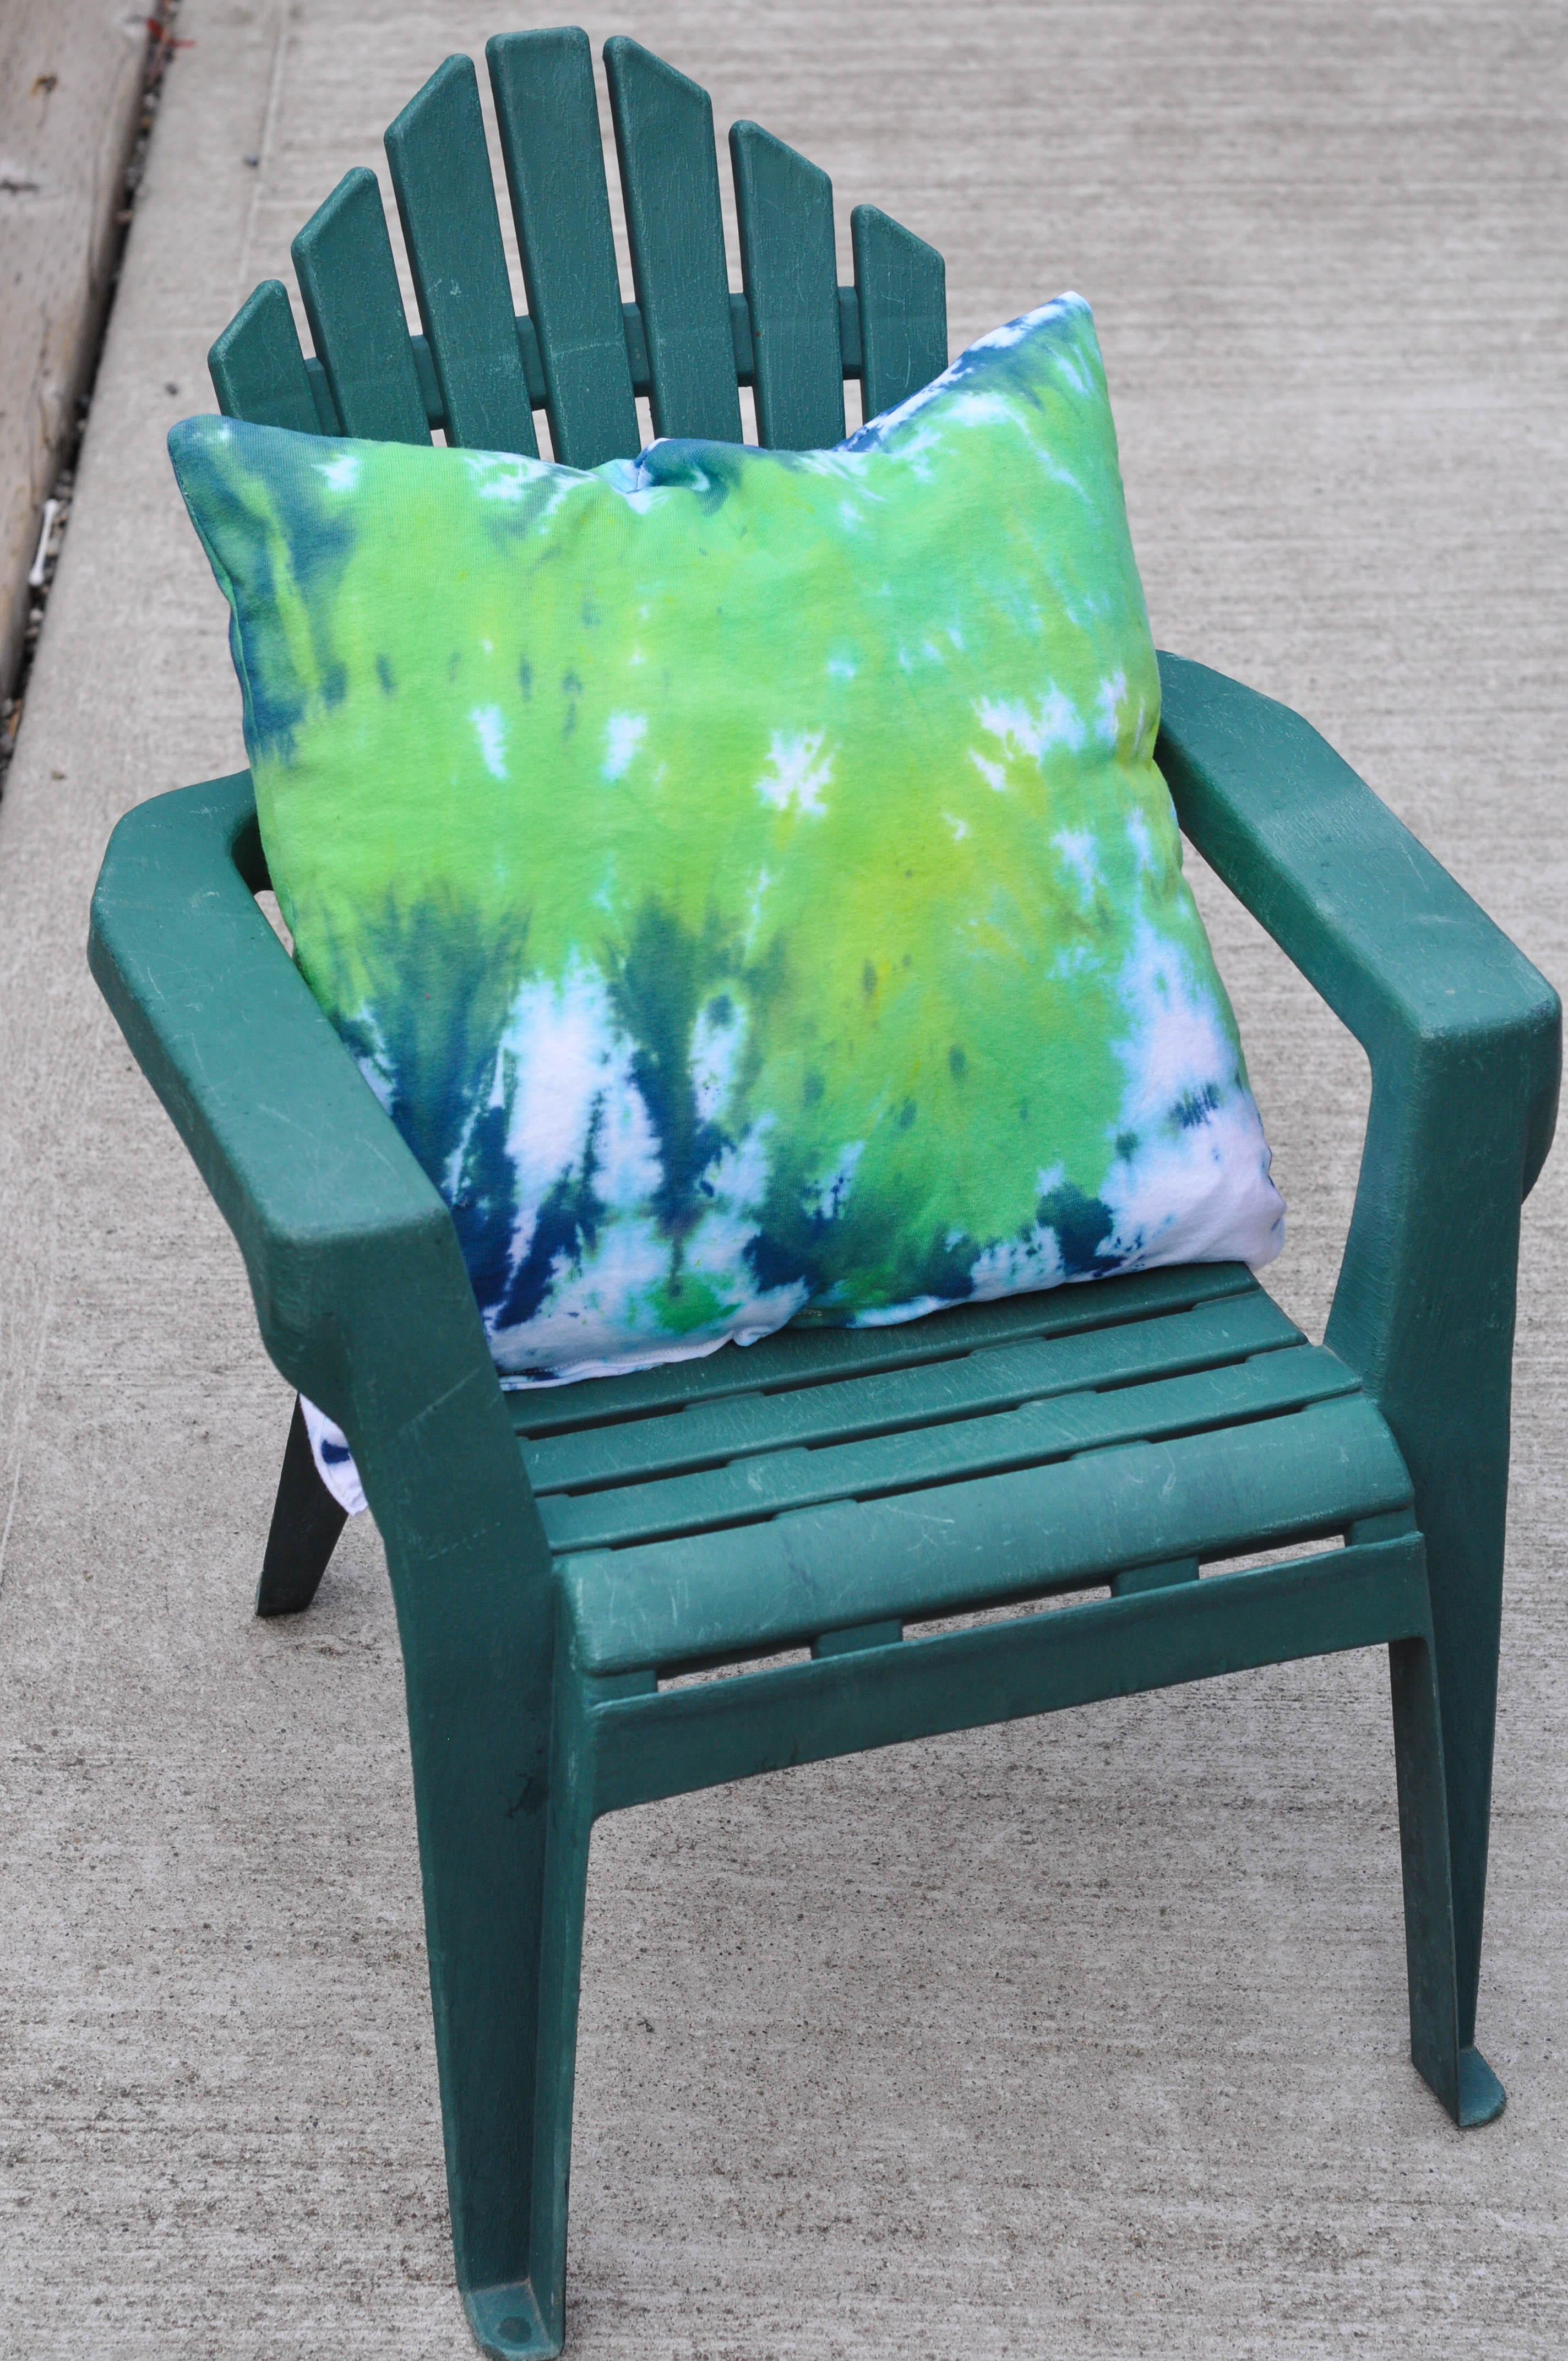 Lovely Tie Dye Green Pillow Suburble of